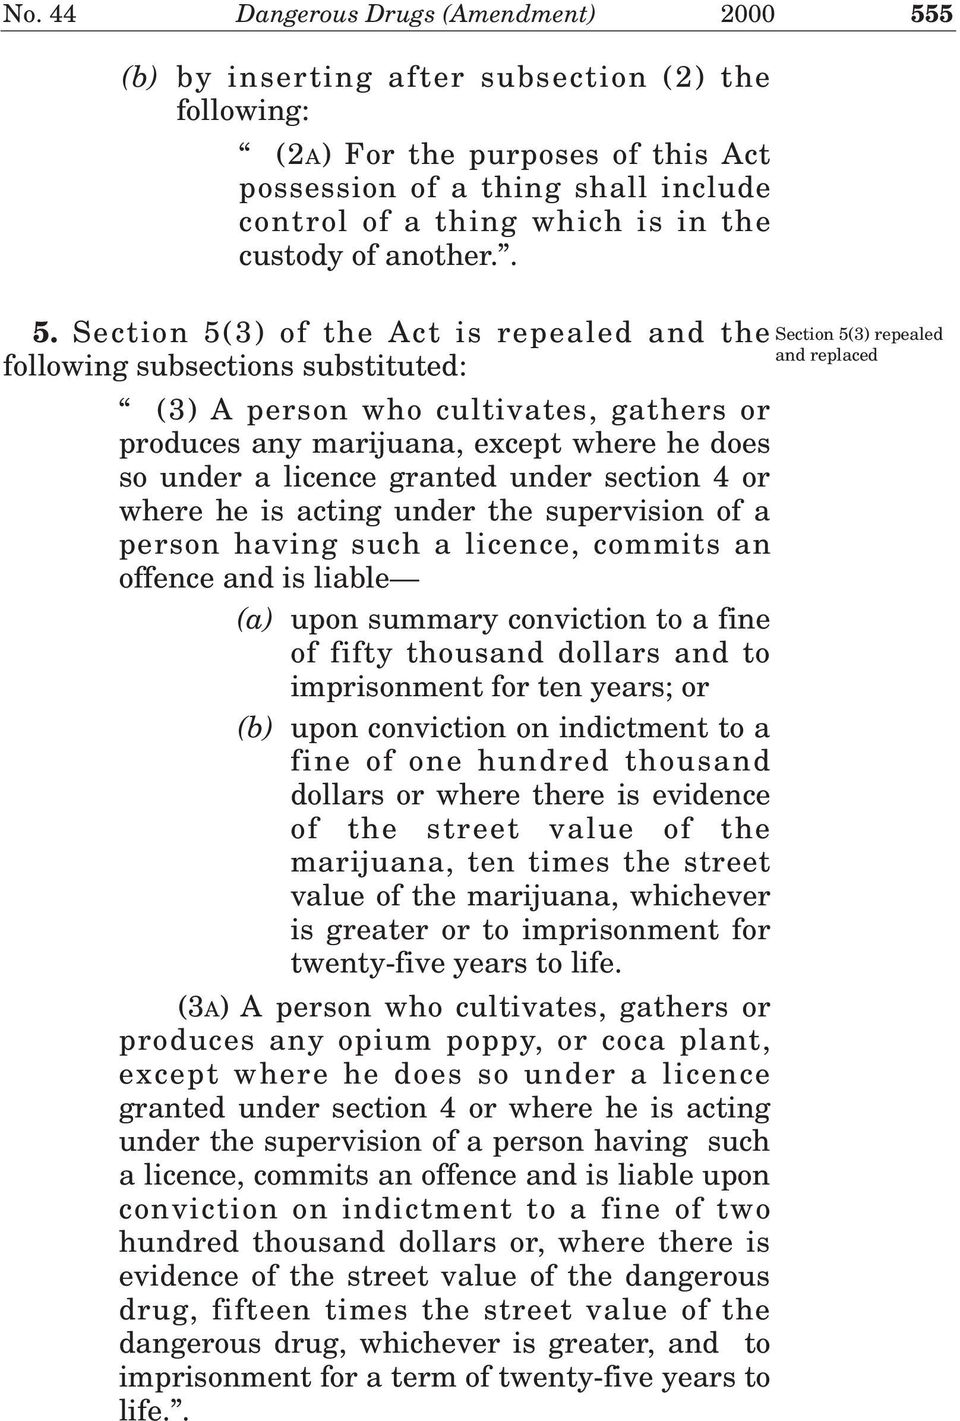 Section 5(3) of the Act is repealed and the following subsections substituted: (3) A person who cultivates, gathers or produces any marijuana, except where he does so under a licence granted under